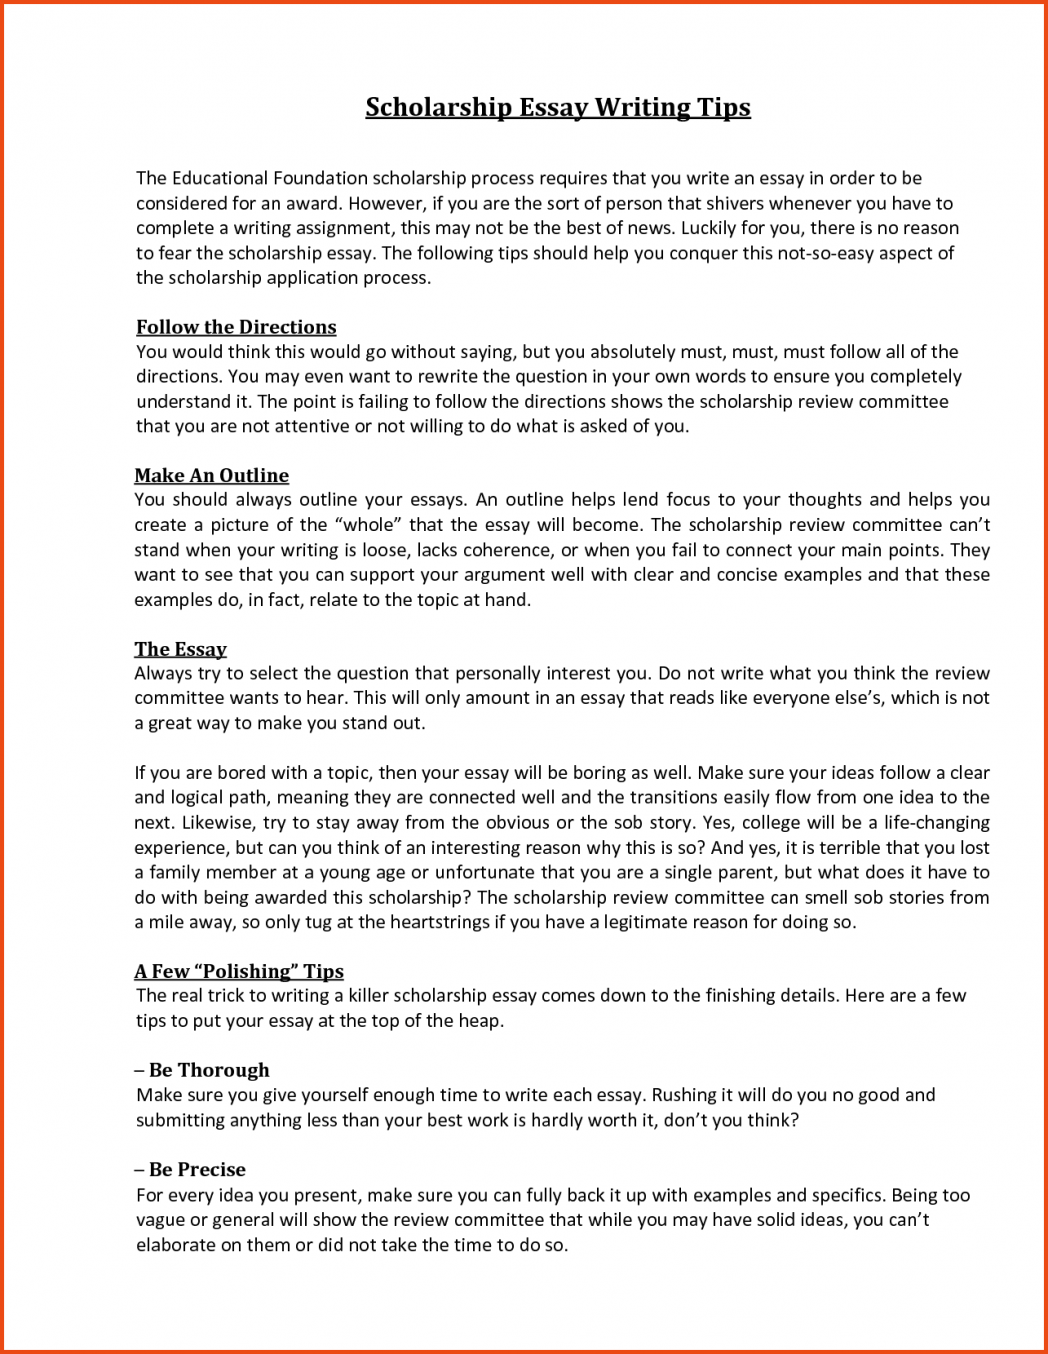 015 Pay For Essays Five Typical Mistakes When Writing Academic Paper Checker Someone To Write Your Essay You Ideas Collection Scholarship Awesome It Can 1048x1354 Dreaded Cheap Uk Magazines That Full